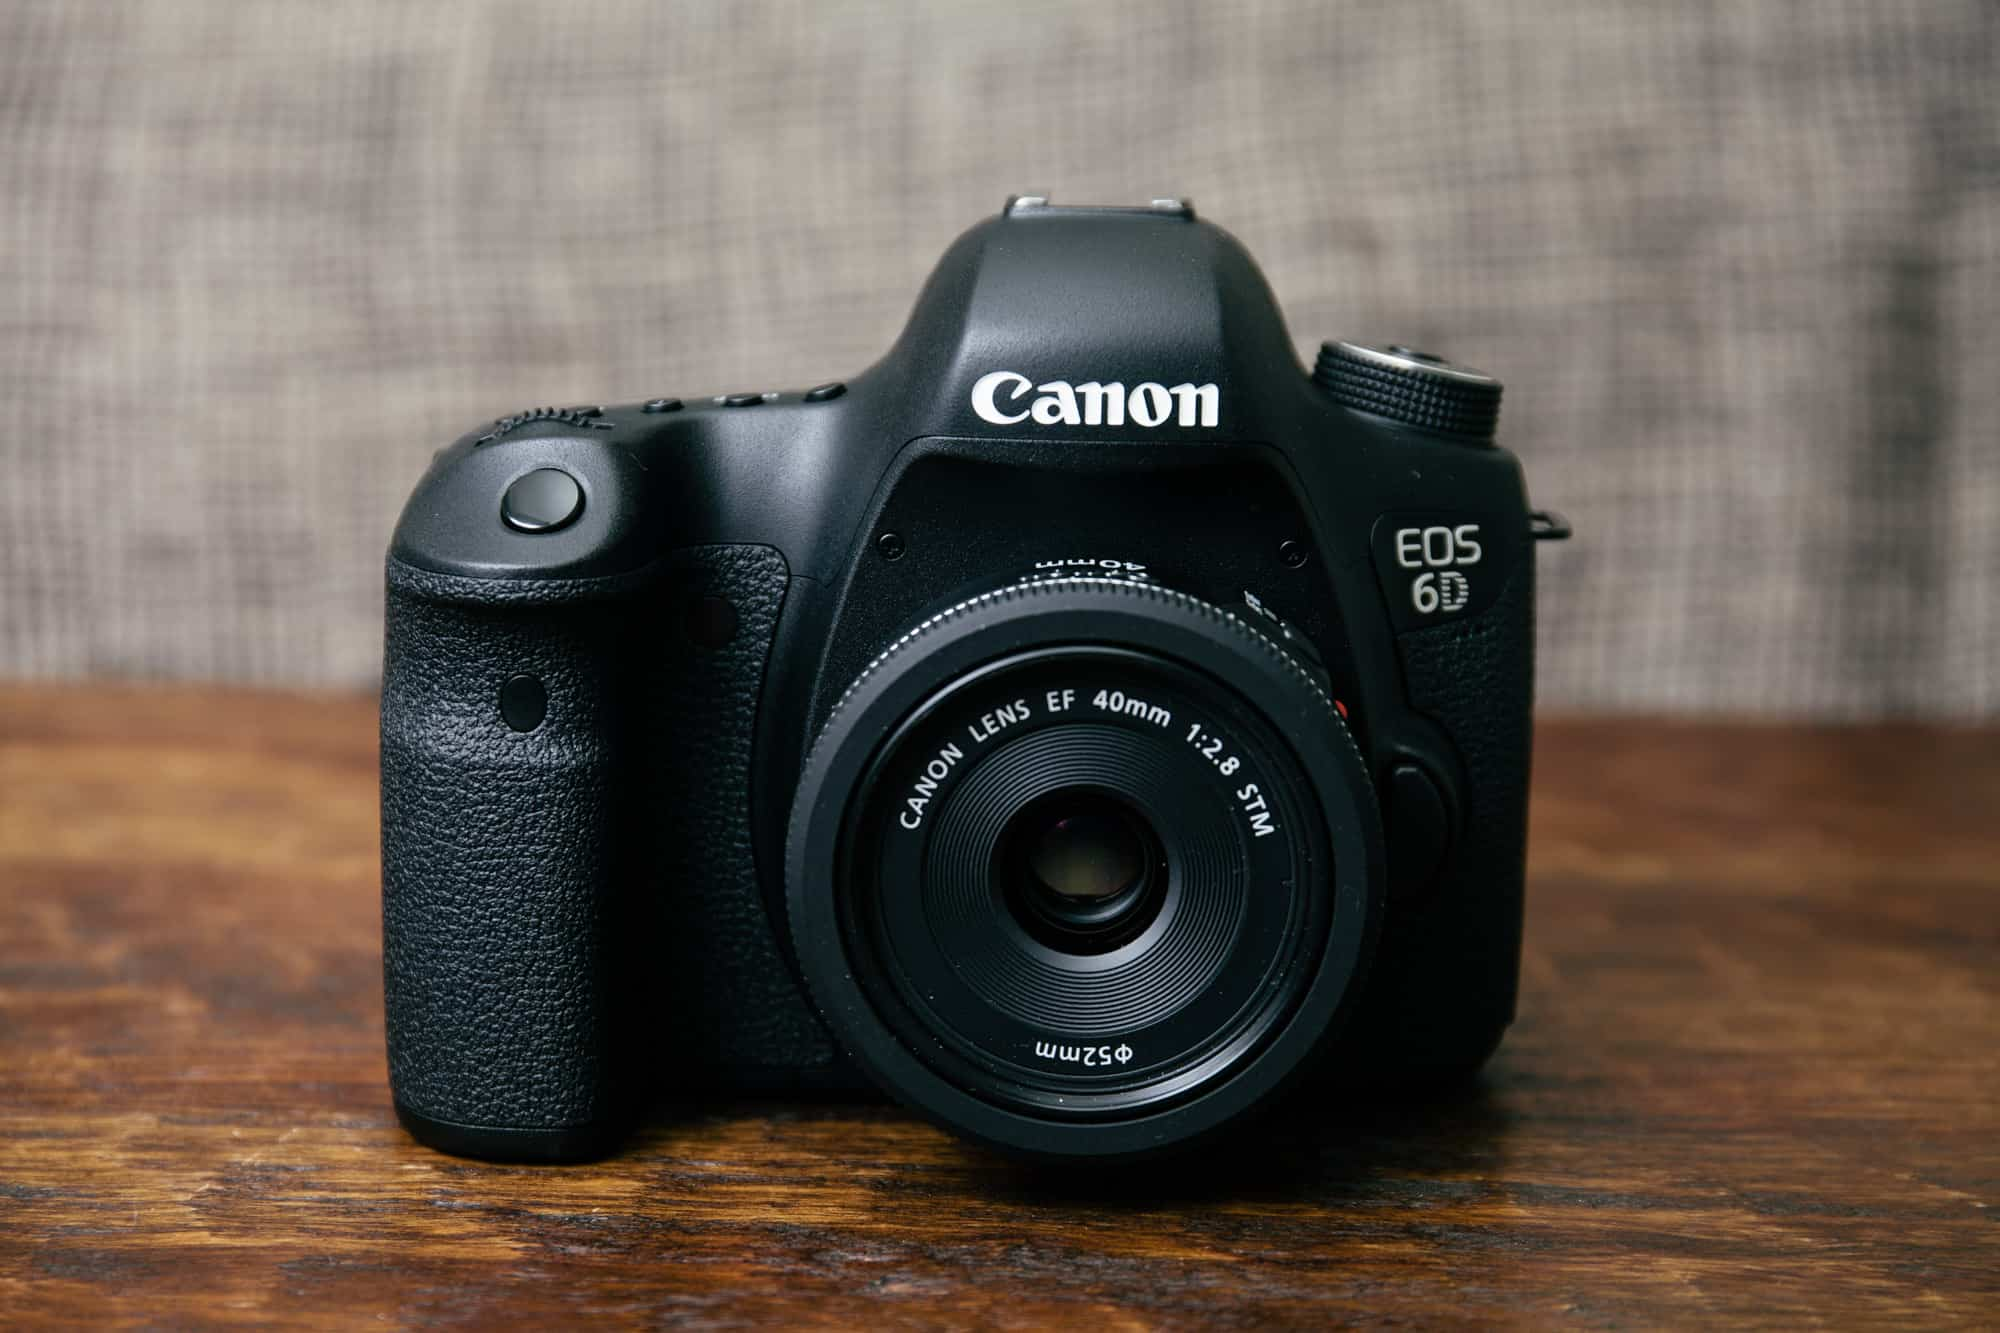 Canon 6D amateur camera